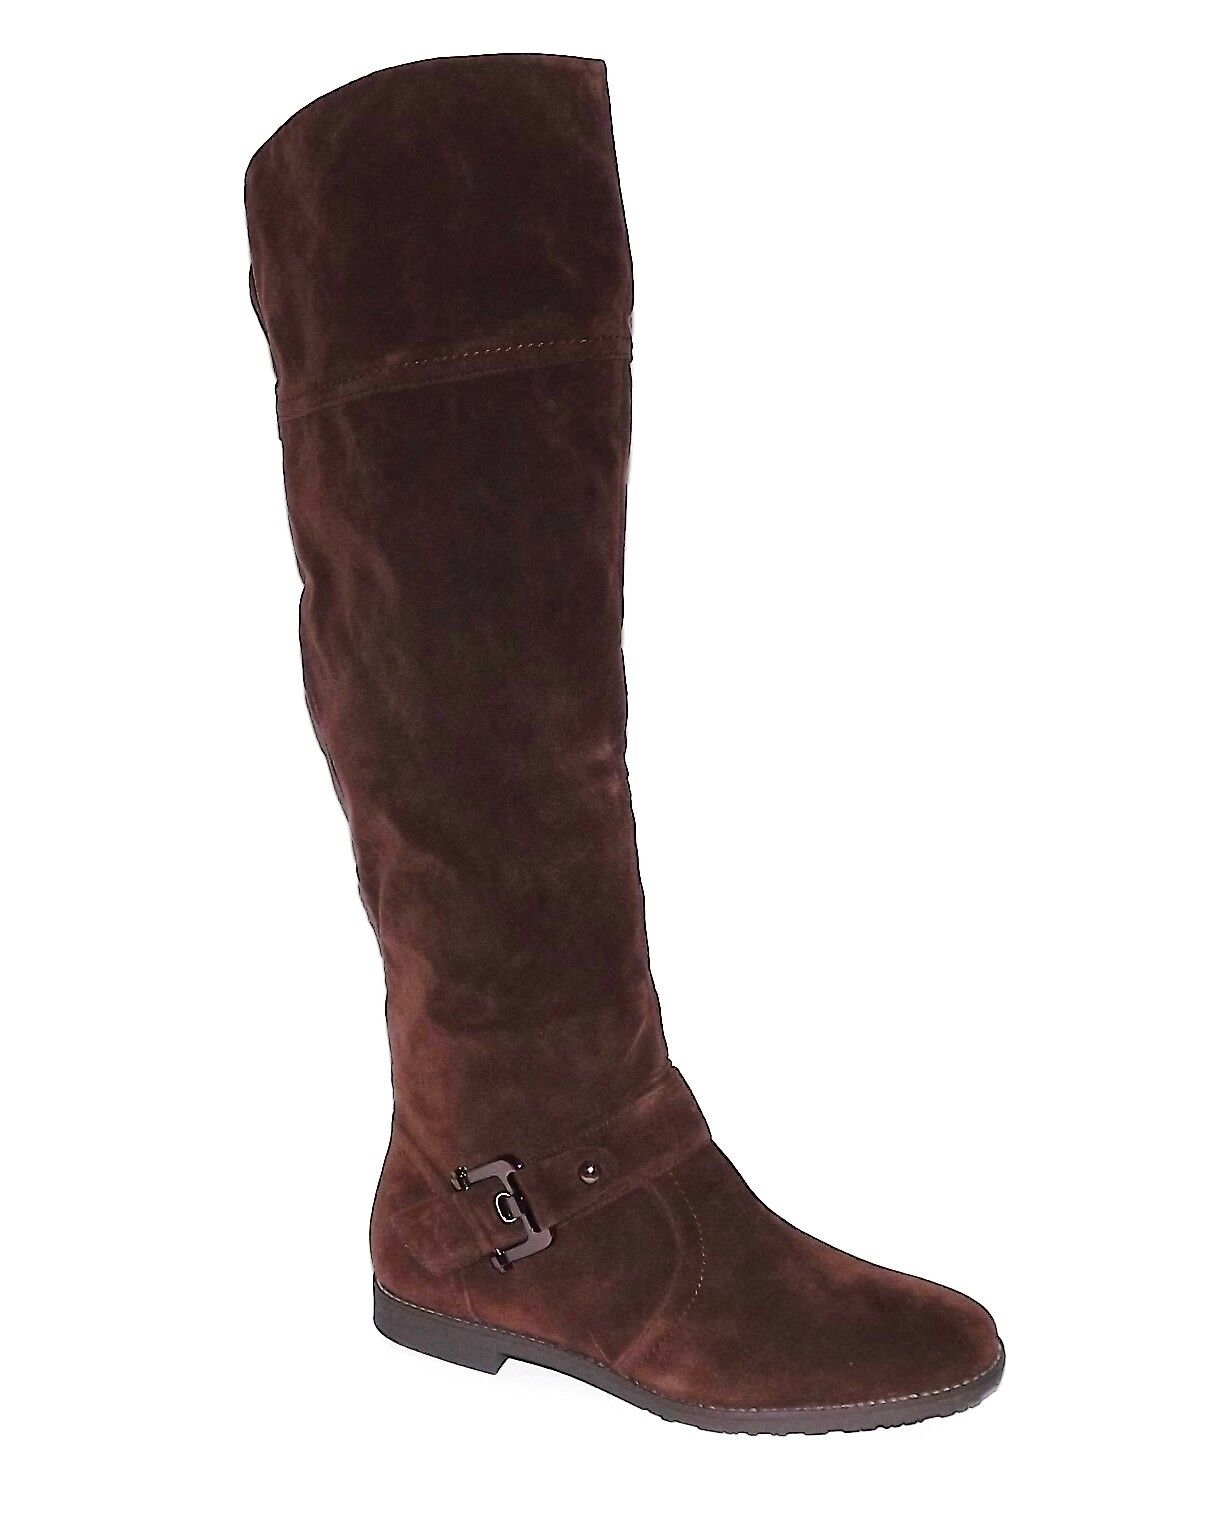 Womens Brown Faux Suede Above Knee High Cowboy Motorcycle Riding Boots Sz 5-10